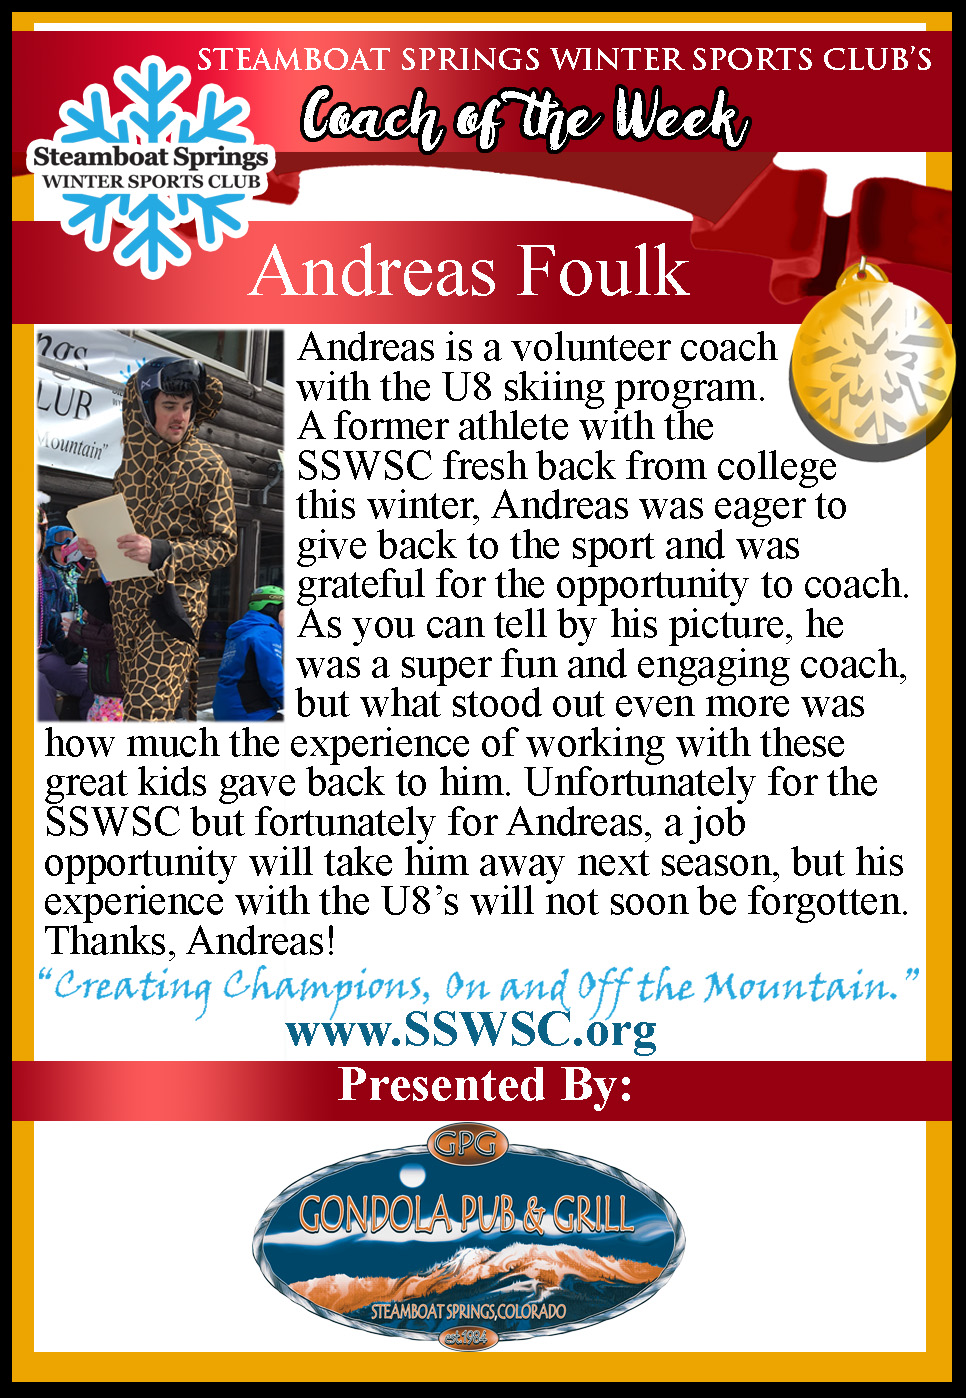 Coach of the Week, Andreas Foulk